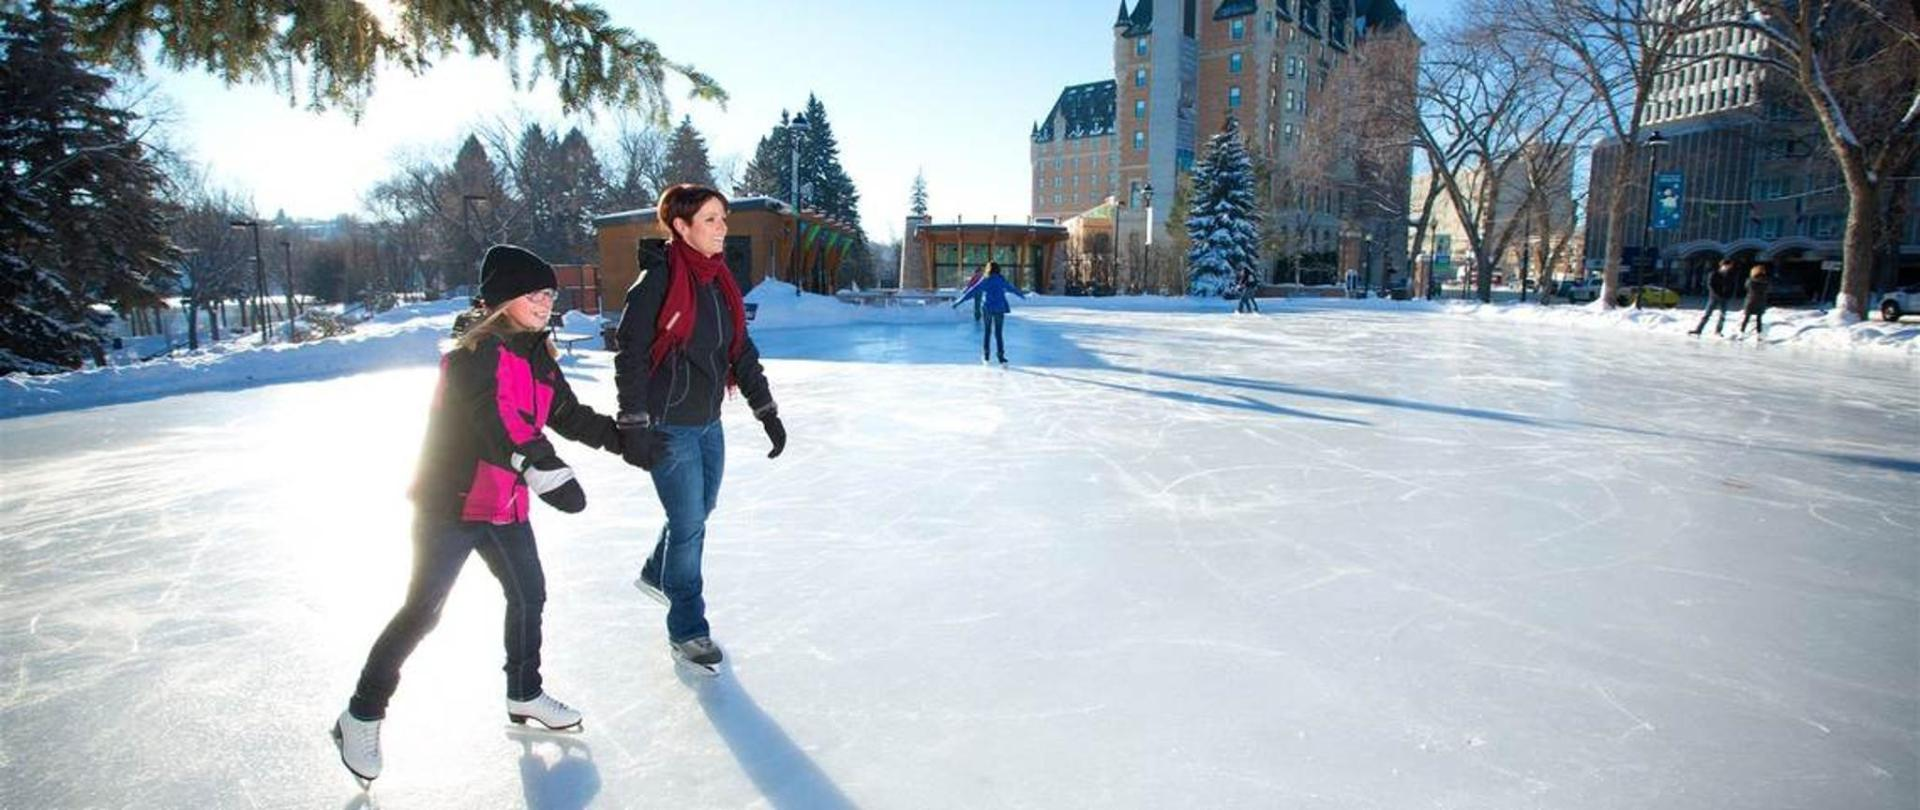 ice-skating-in-downtown-saskatoon-compliments-of-tourism-saskatoon.jpg.1140x481_default.jpg